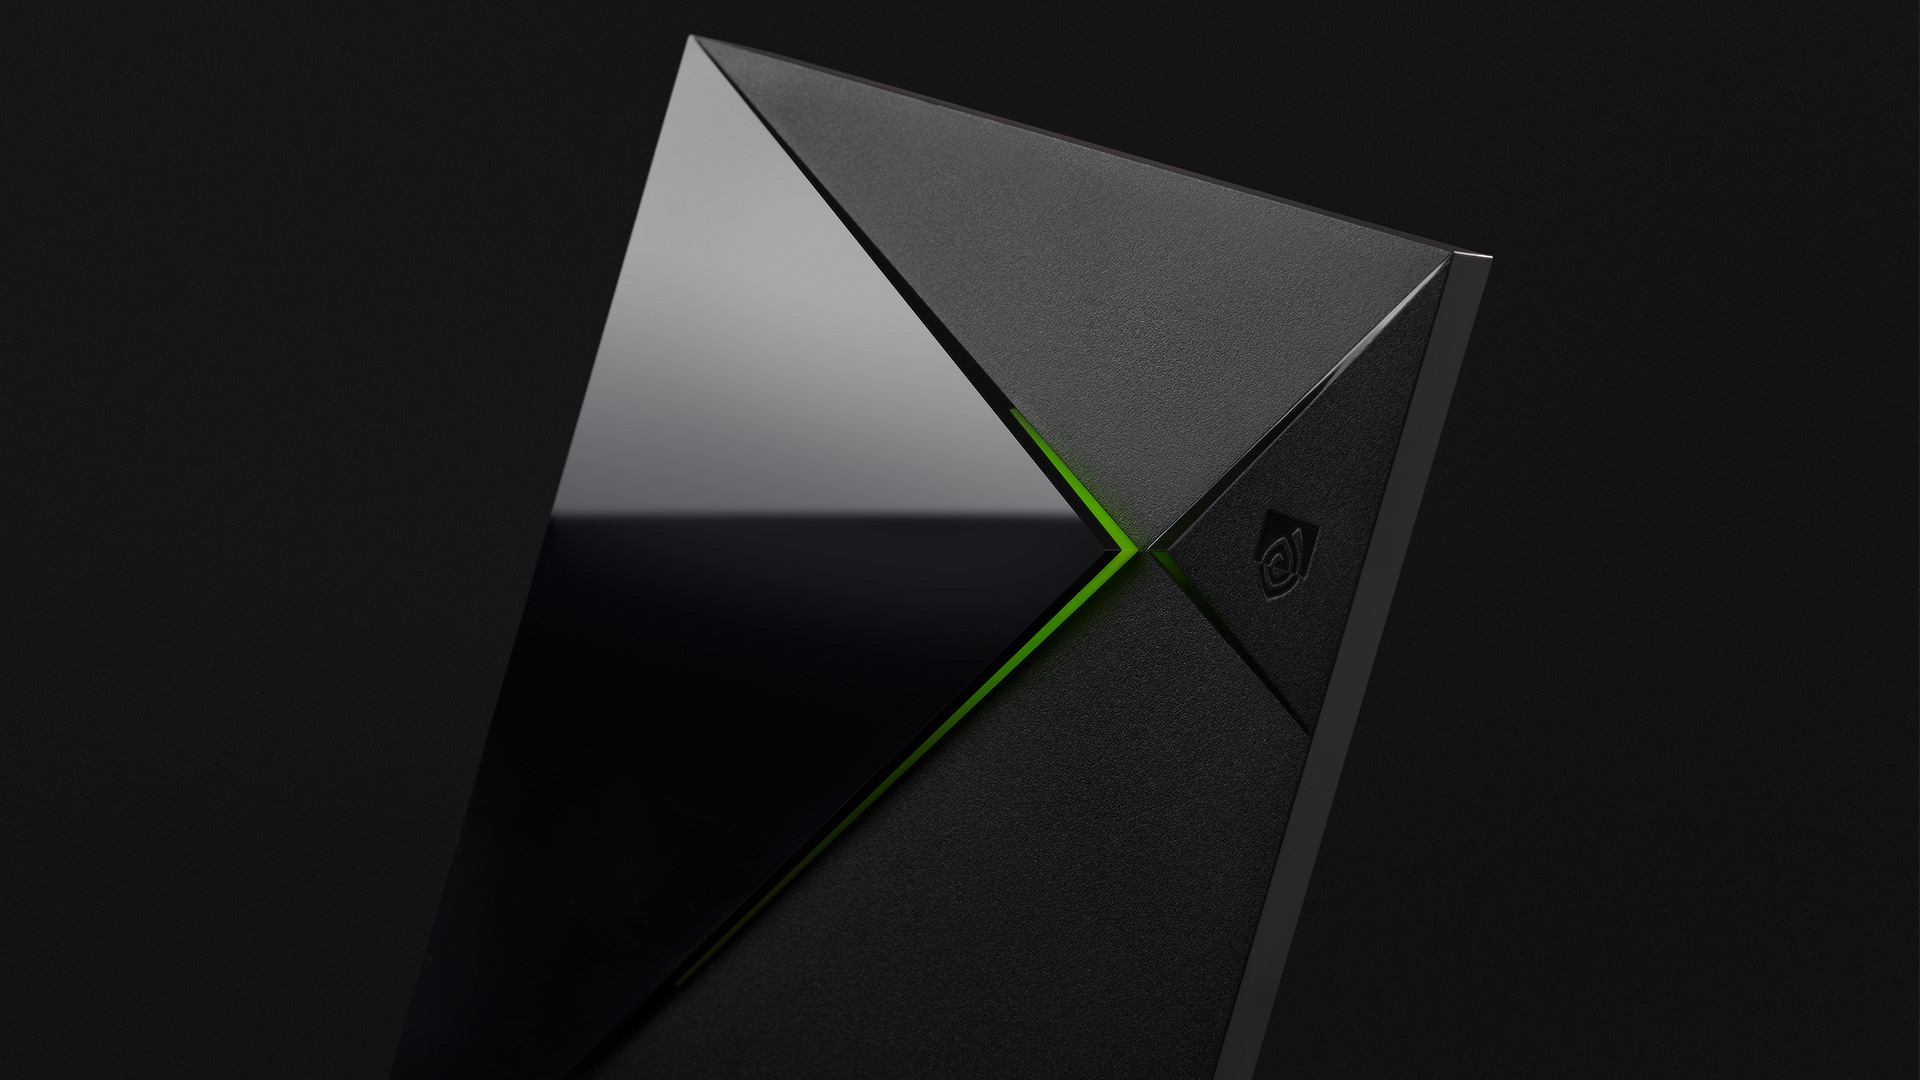 can you connect a keyboard to nvidia shield